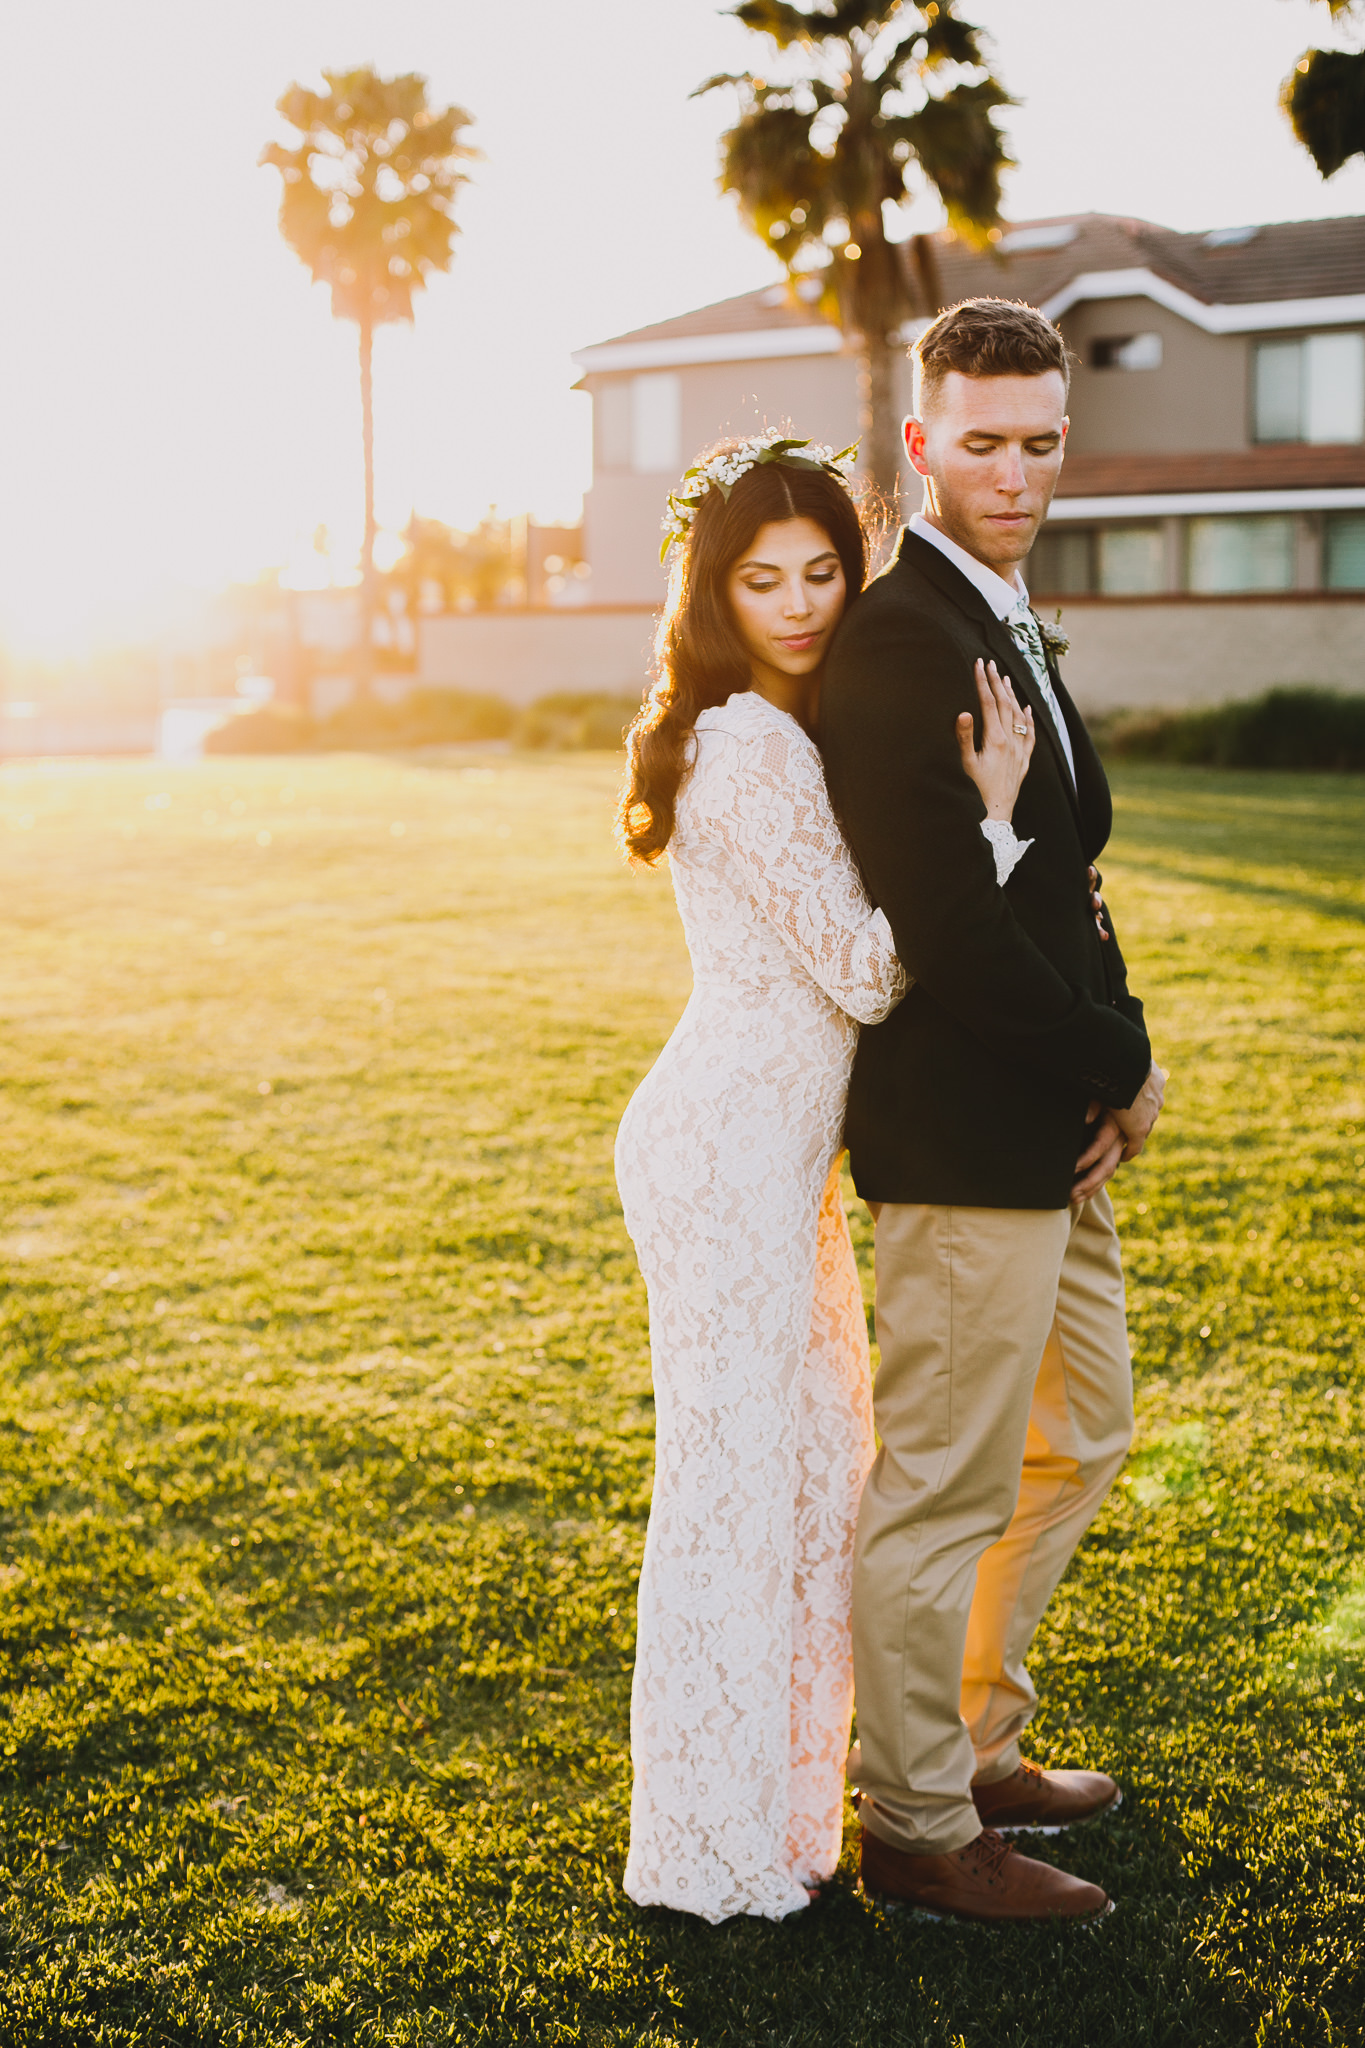 Archer Inspired Photography Lauren and Derek Long Beach Orange County Wedding Elopement-298.jpg